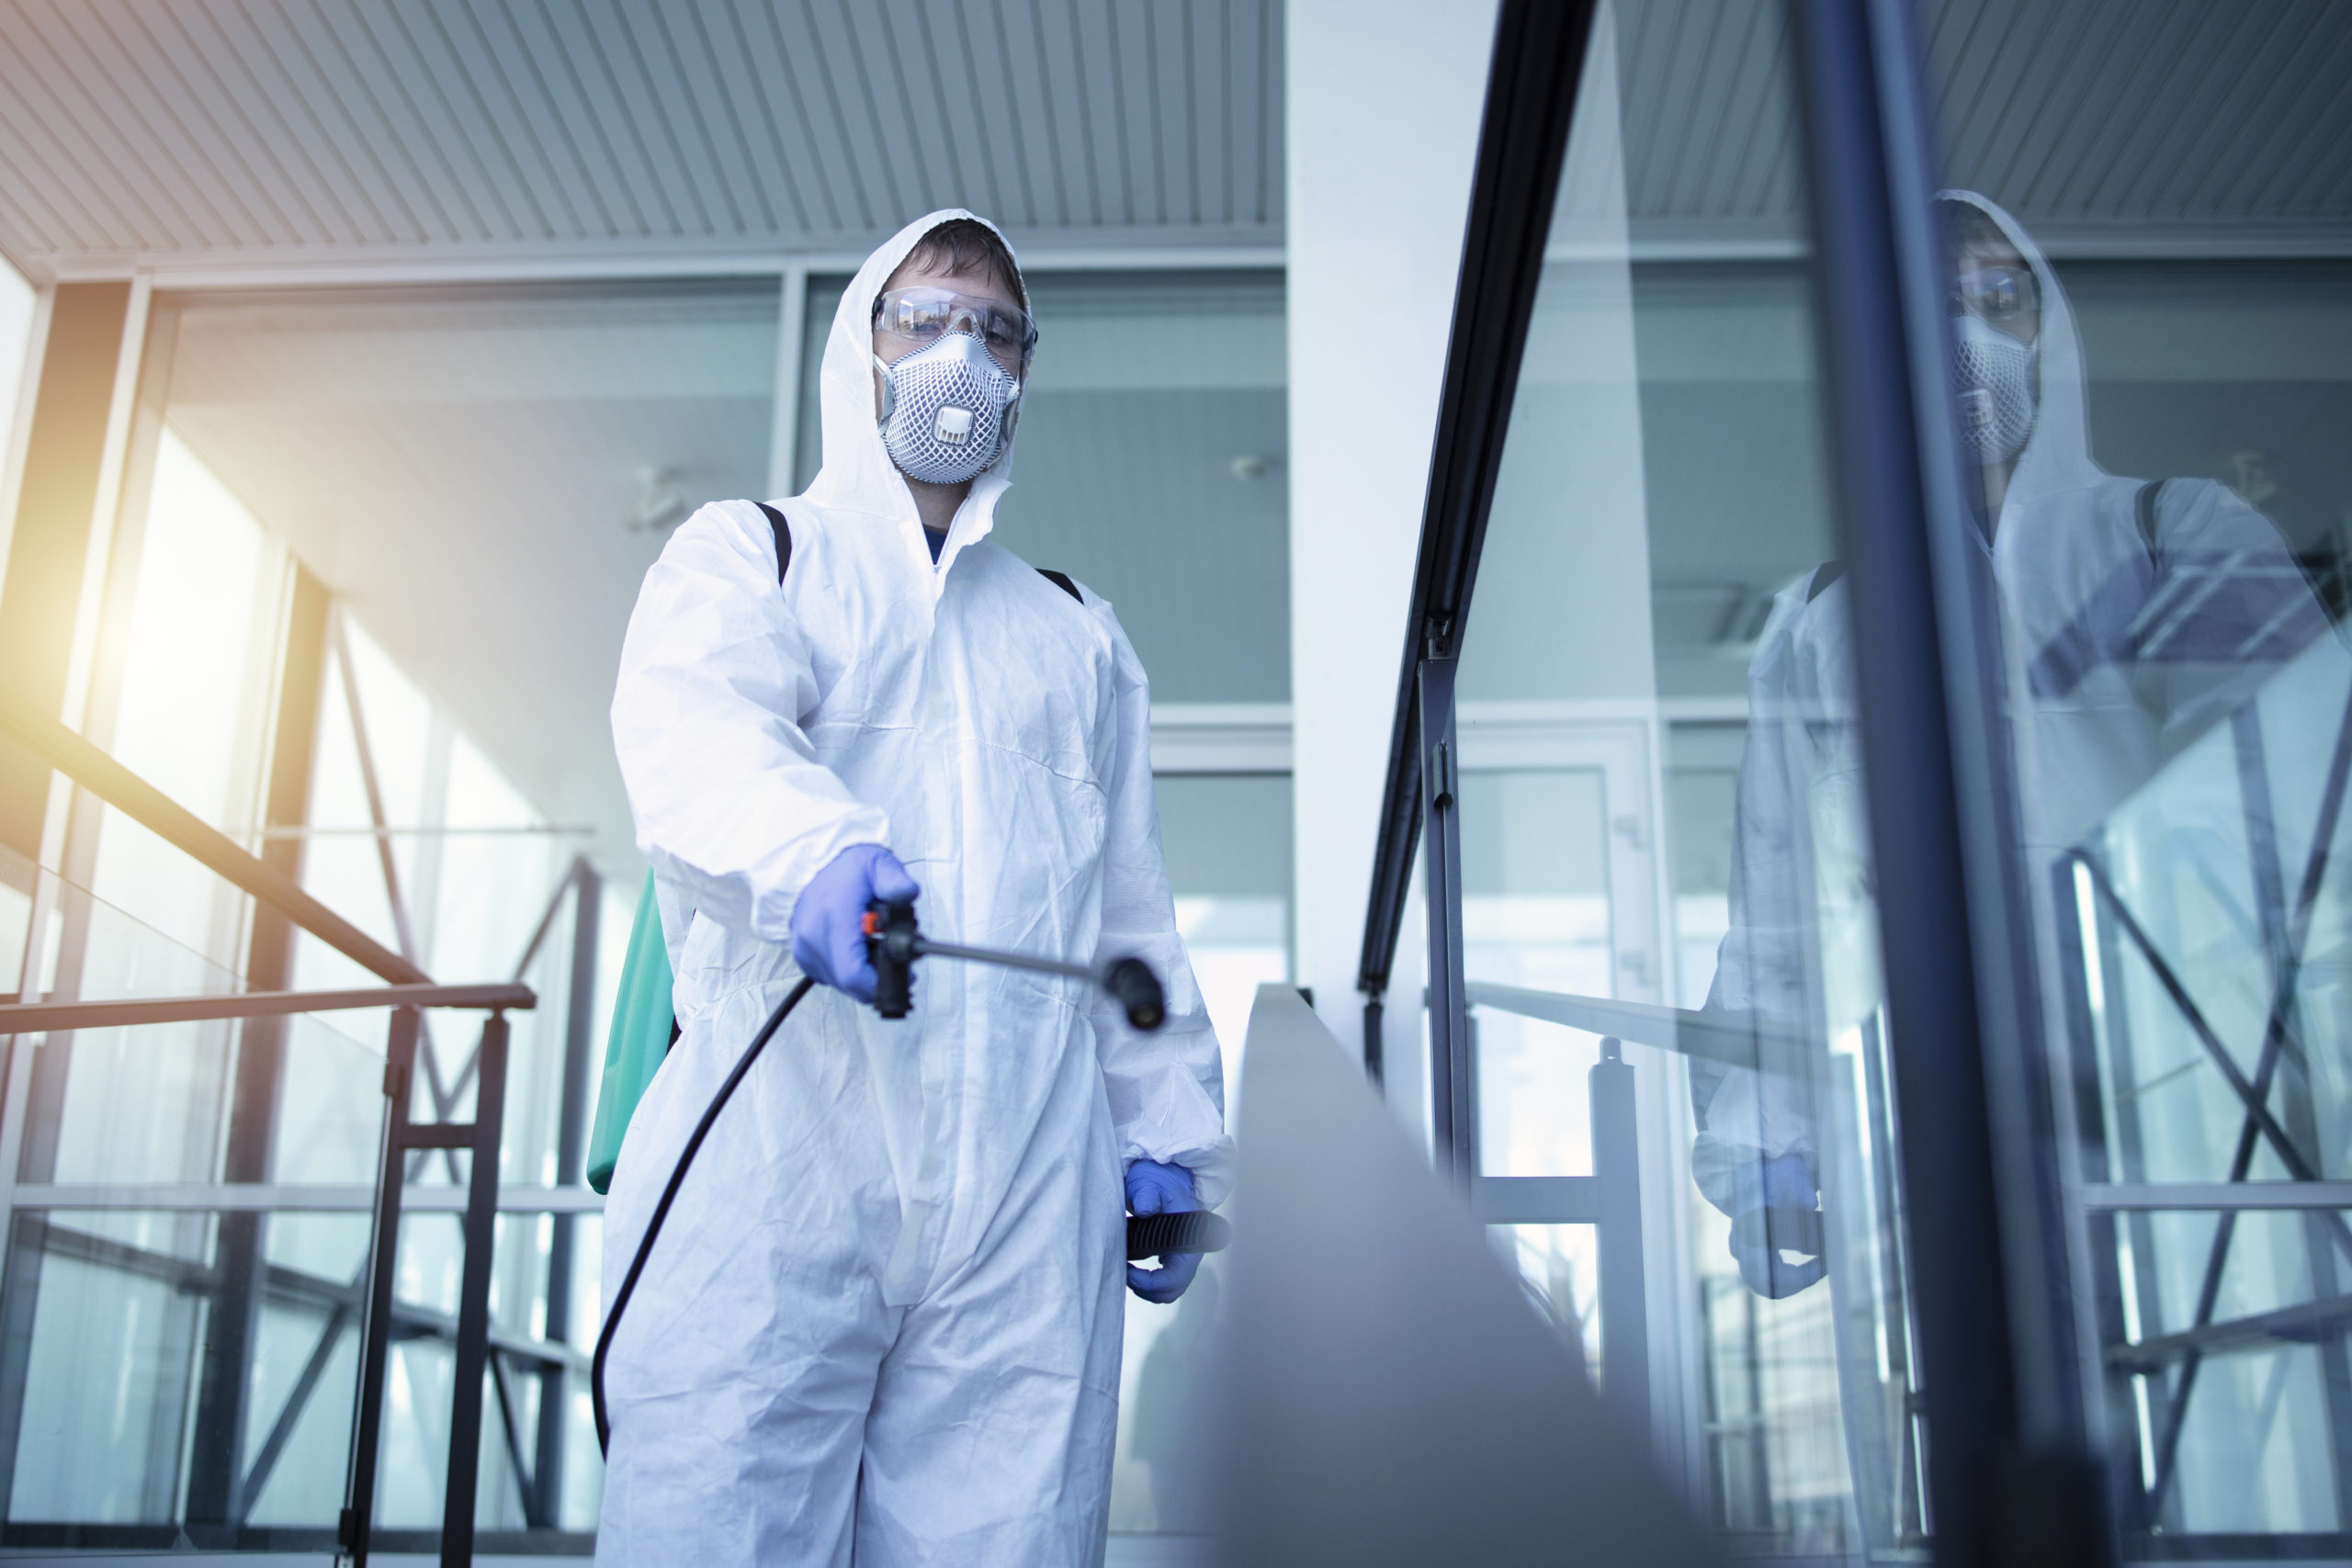 Person in white chemical protection suit doing disinfection of public areas to stop spreading highly contagious corona virus.